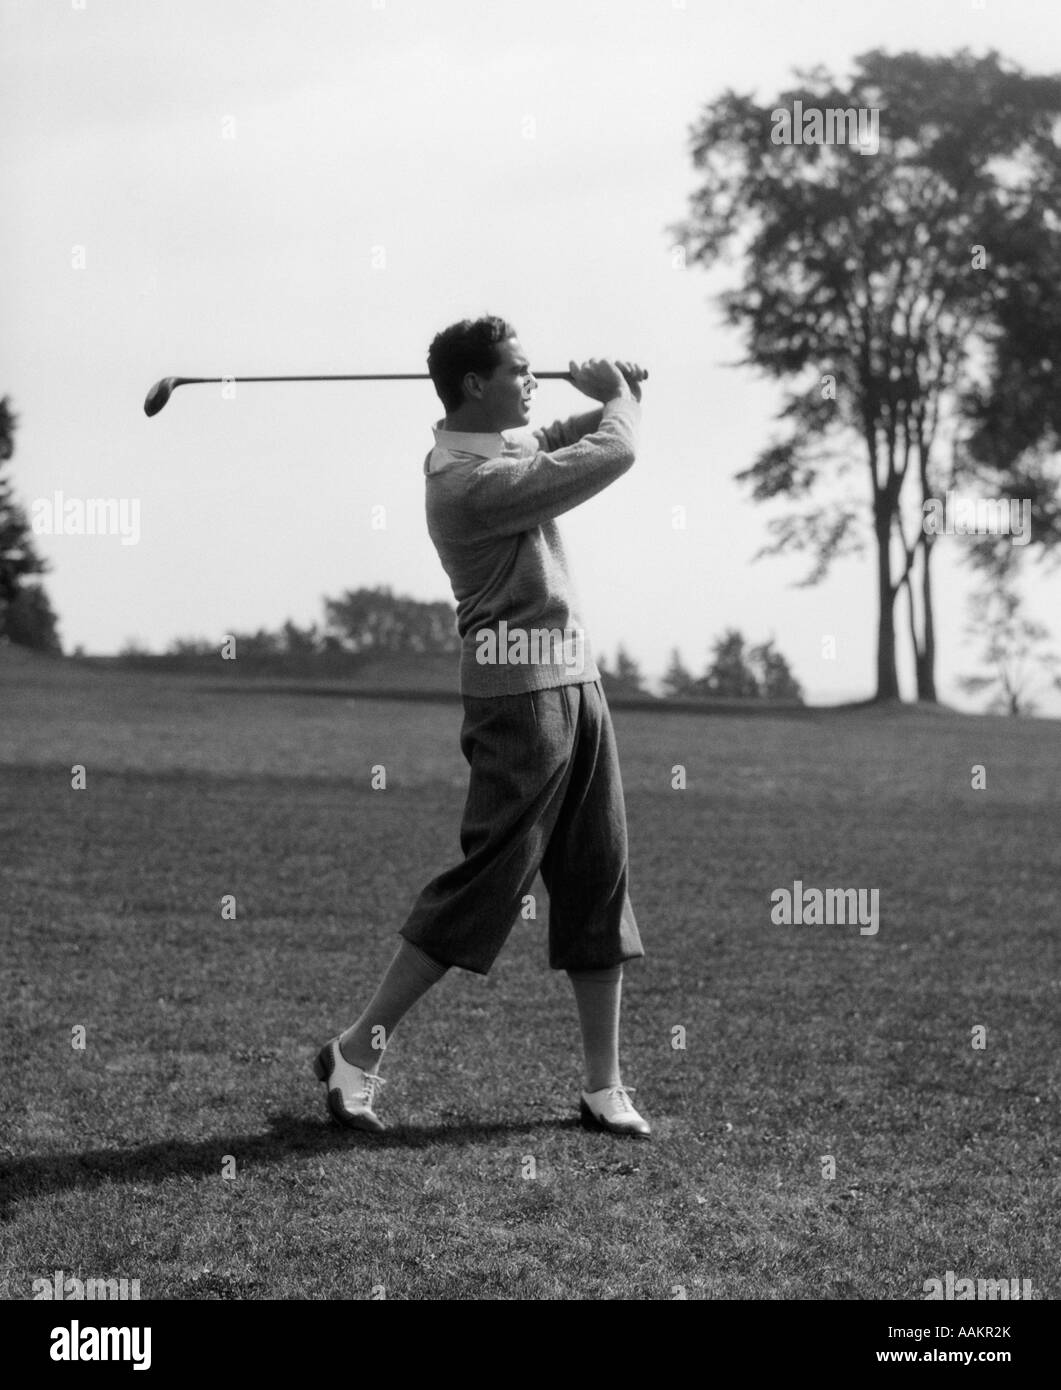 1930s GOLFER IN KNICKERS WITH CLUB IN AIR - Stock Image